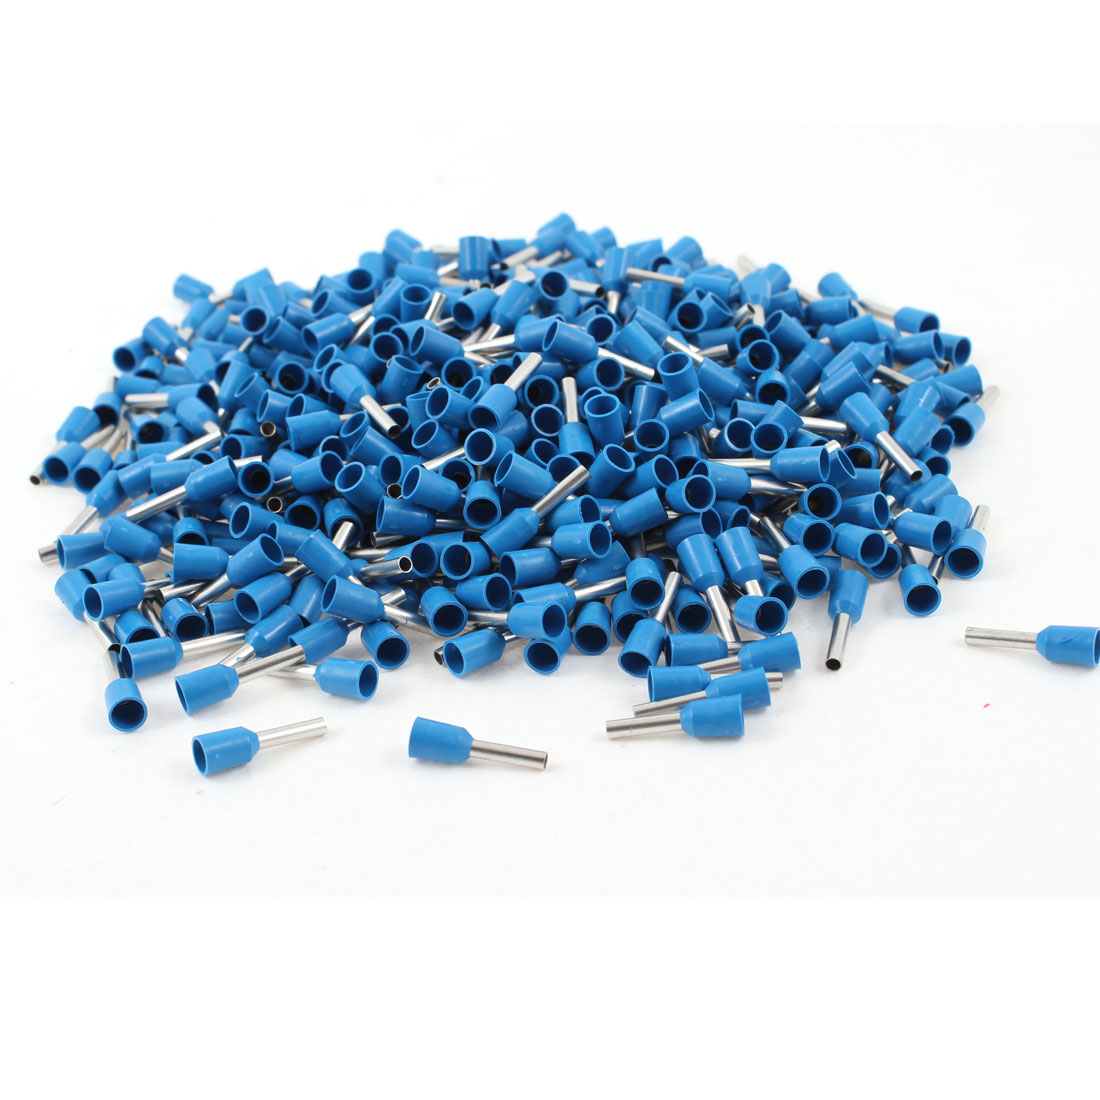 1000Pcs Crimp Connector Insulated Pin Terminal Blue for AWG 16 Wire